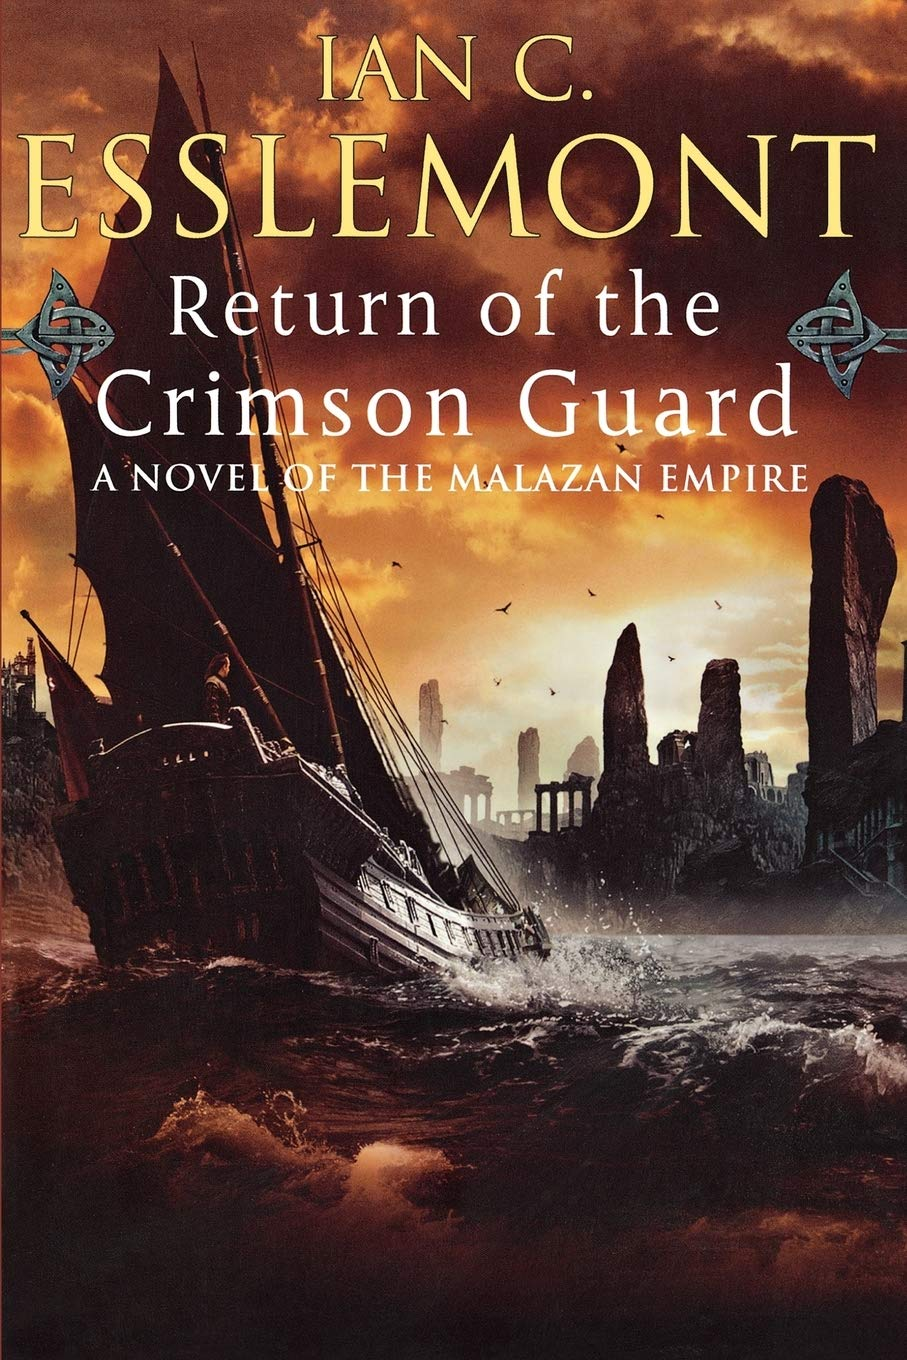 malazan book of the fallen books